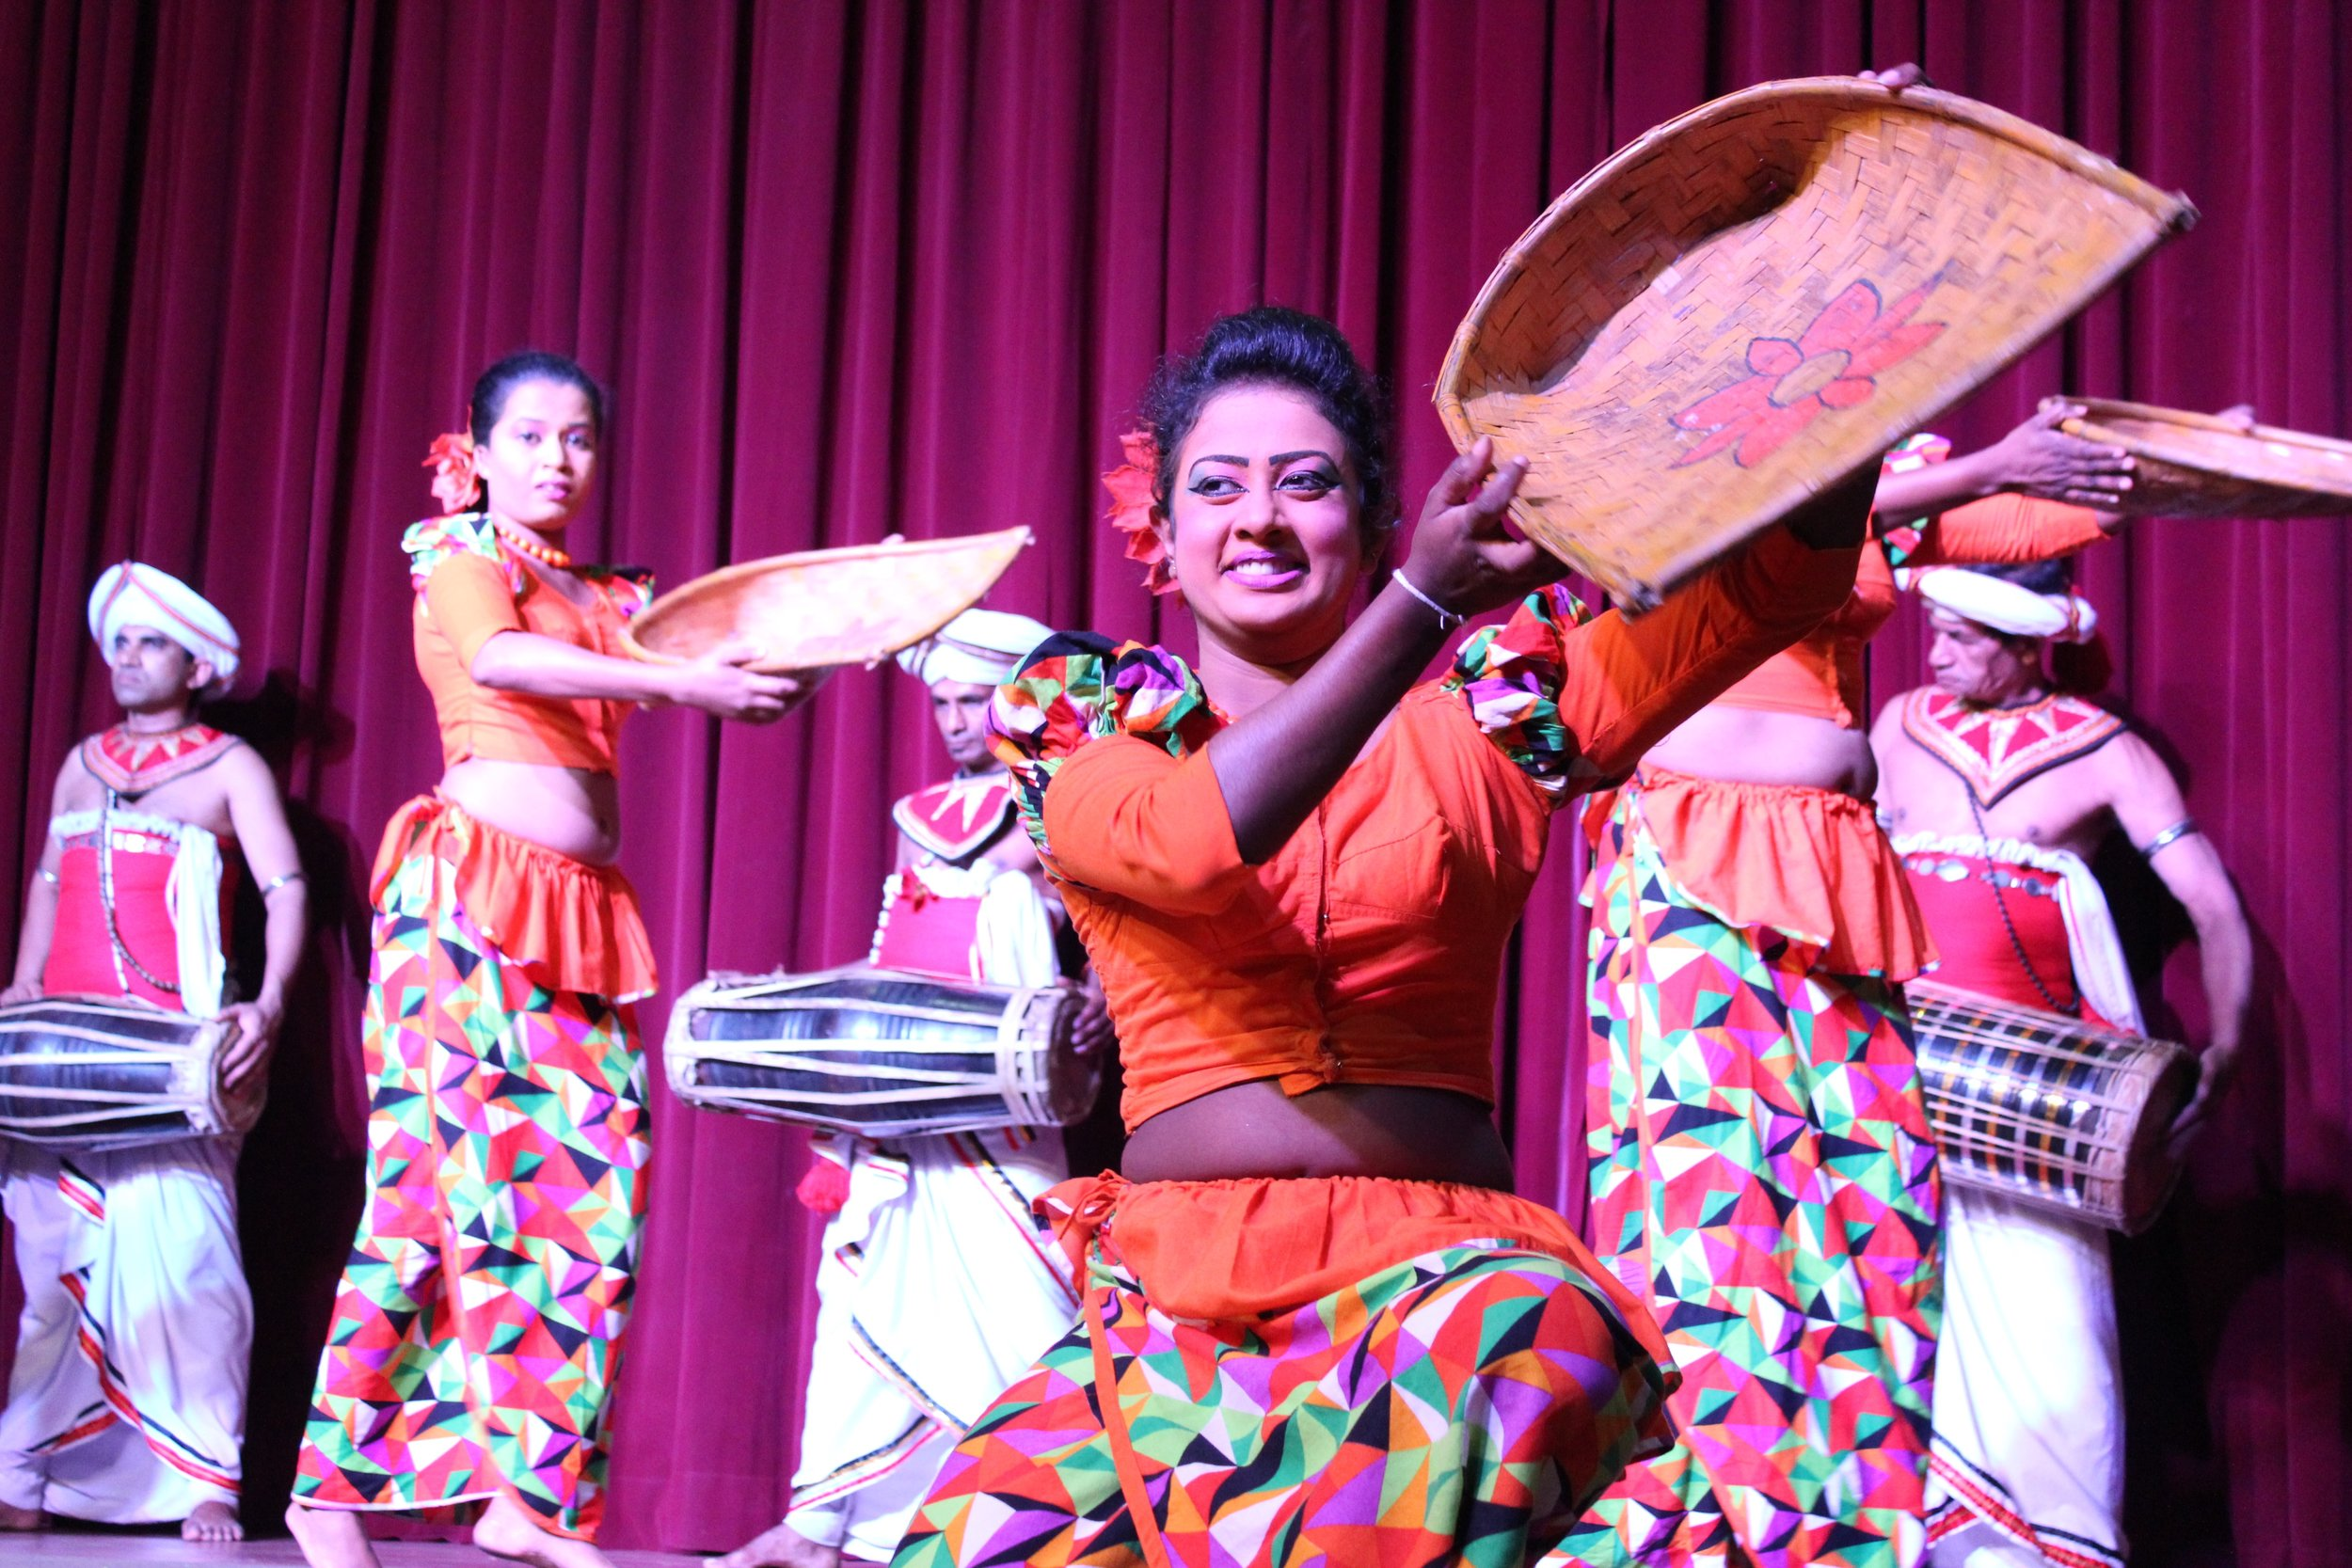 invite-to-paradise-sri-lanka-specialists-experts-travel-agent-tour-operator-kandy-cultural-dance-show-4.jpg